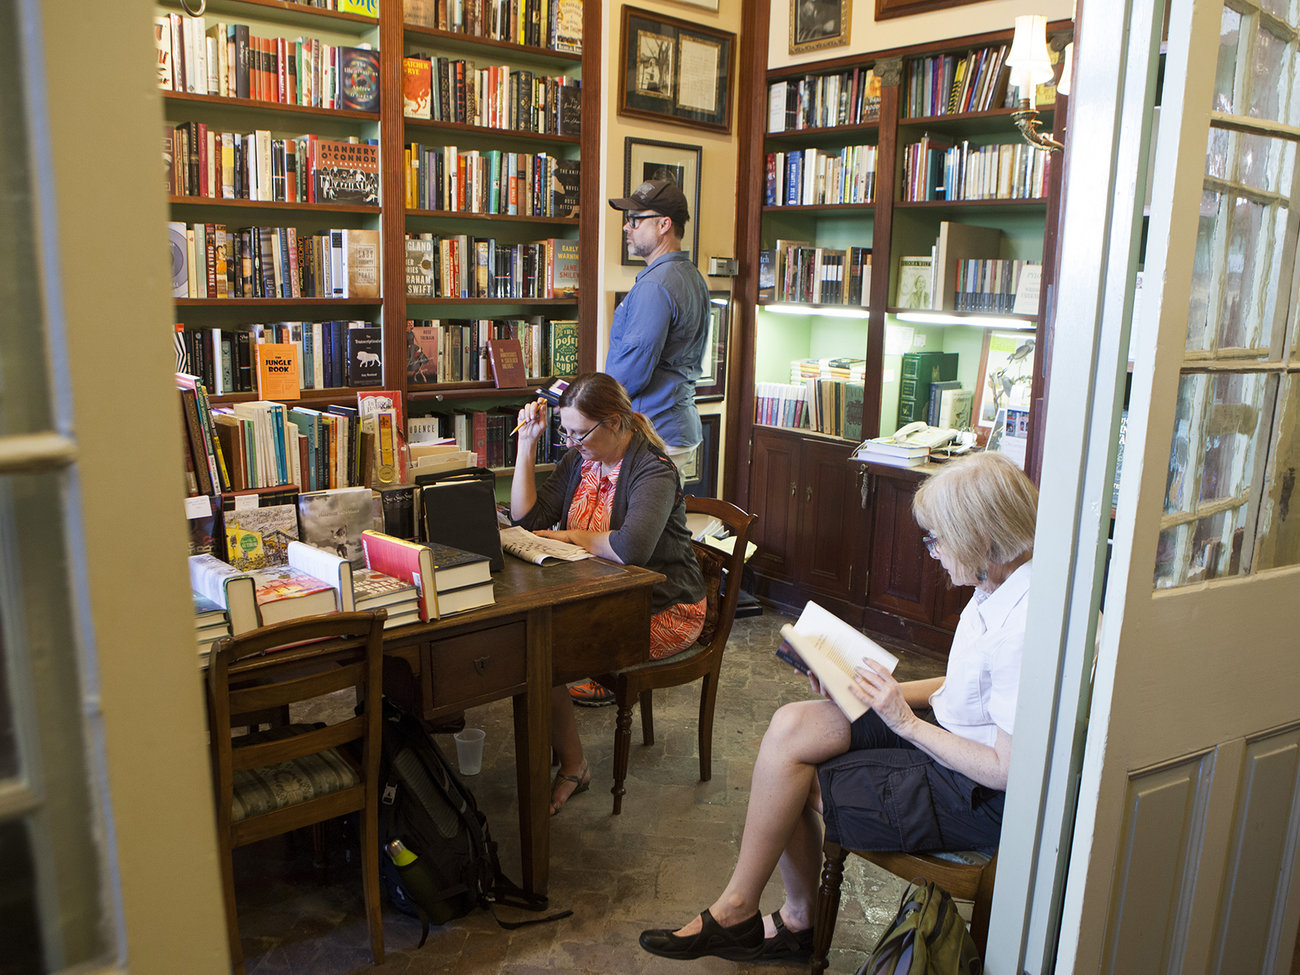 Faulkner House Books Store in New Orleans